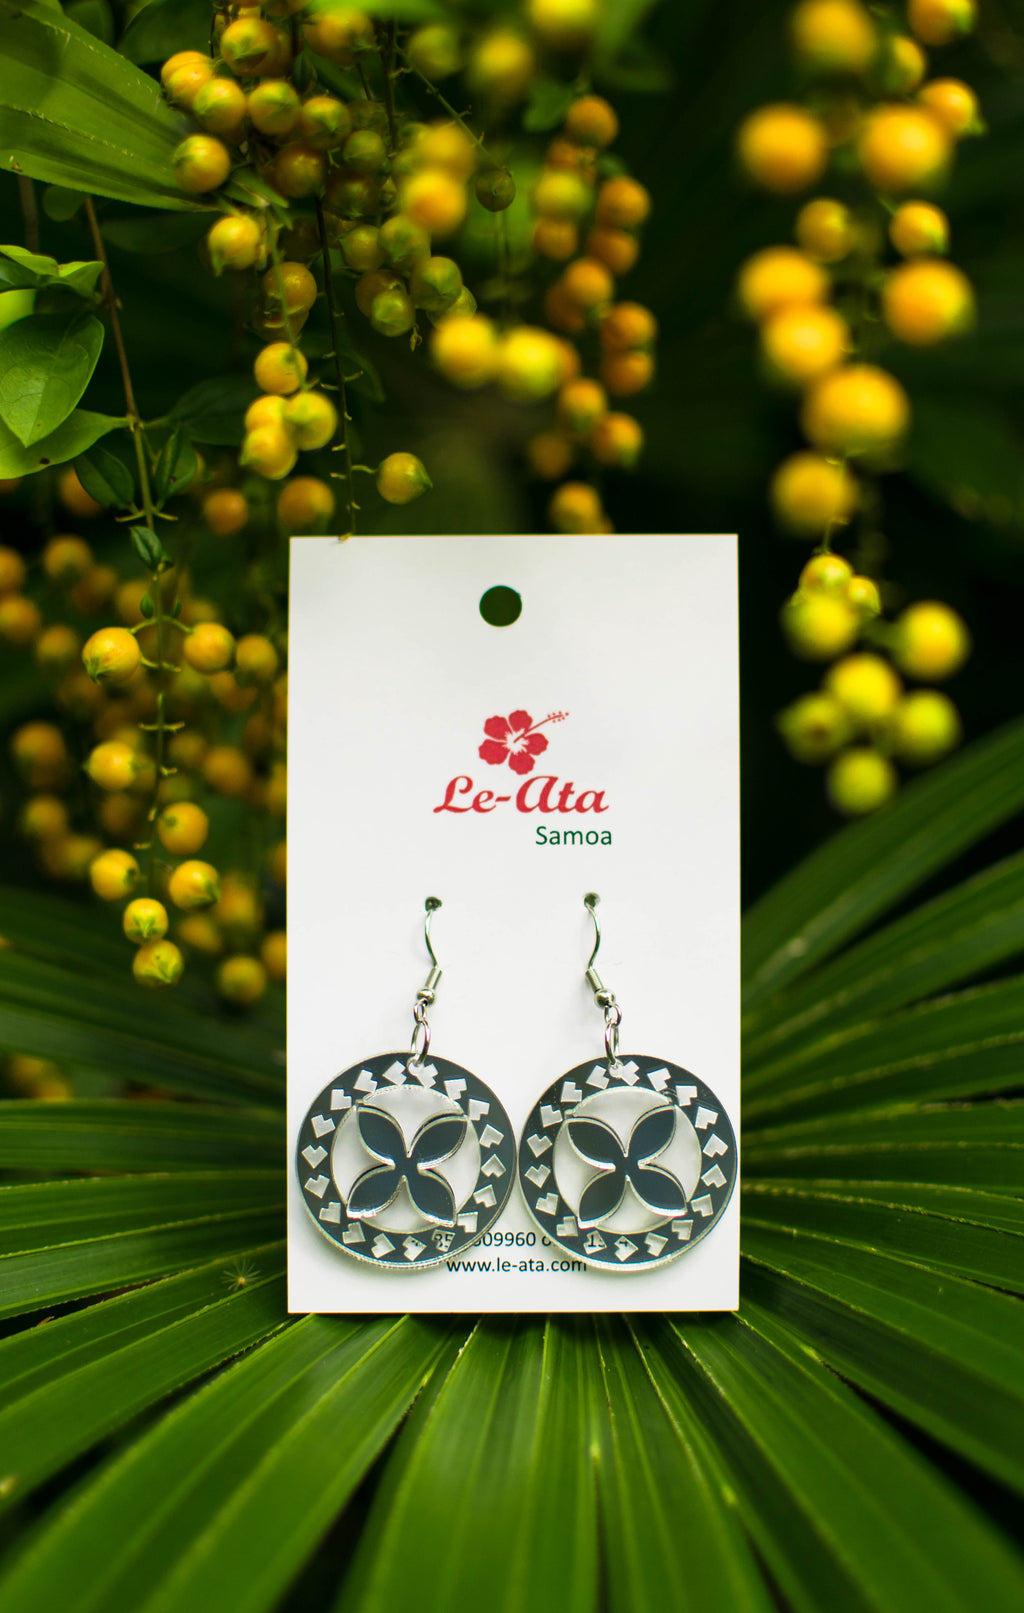 Ulutao Earrings